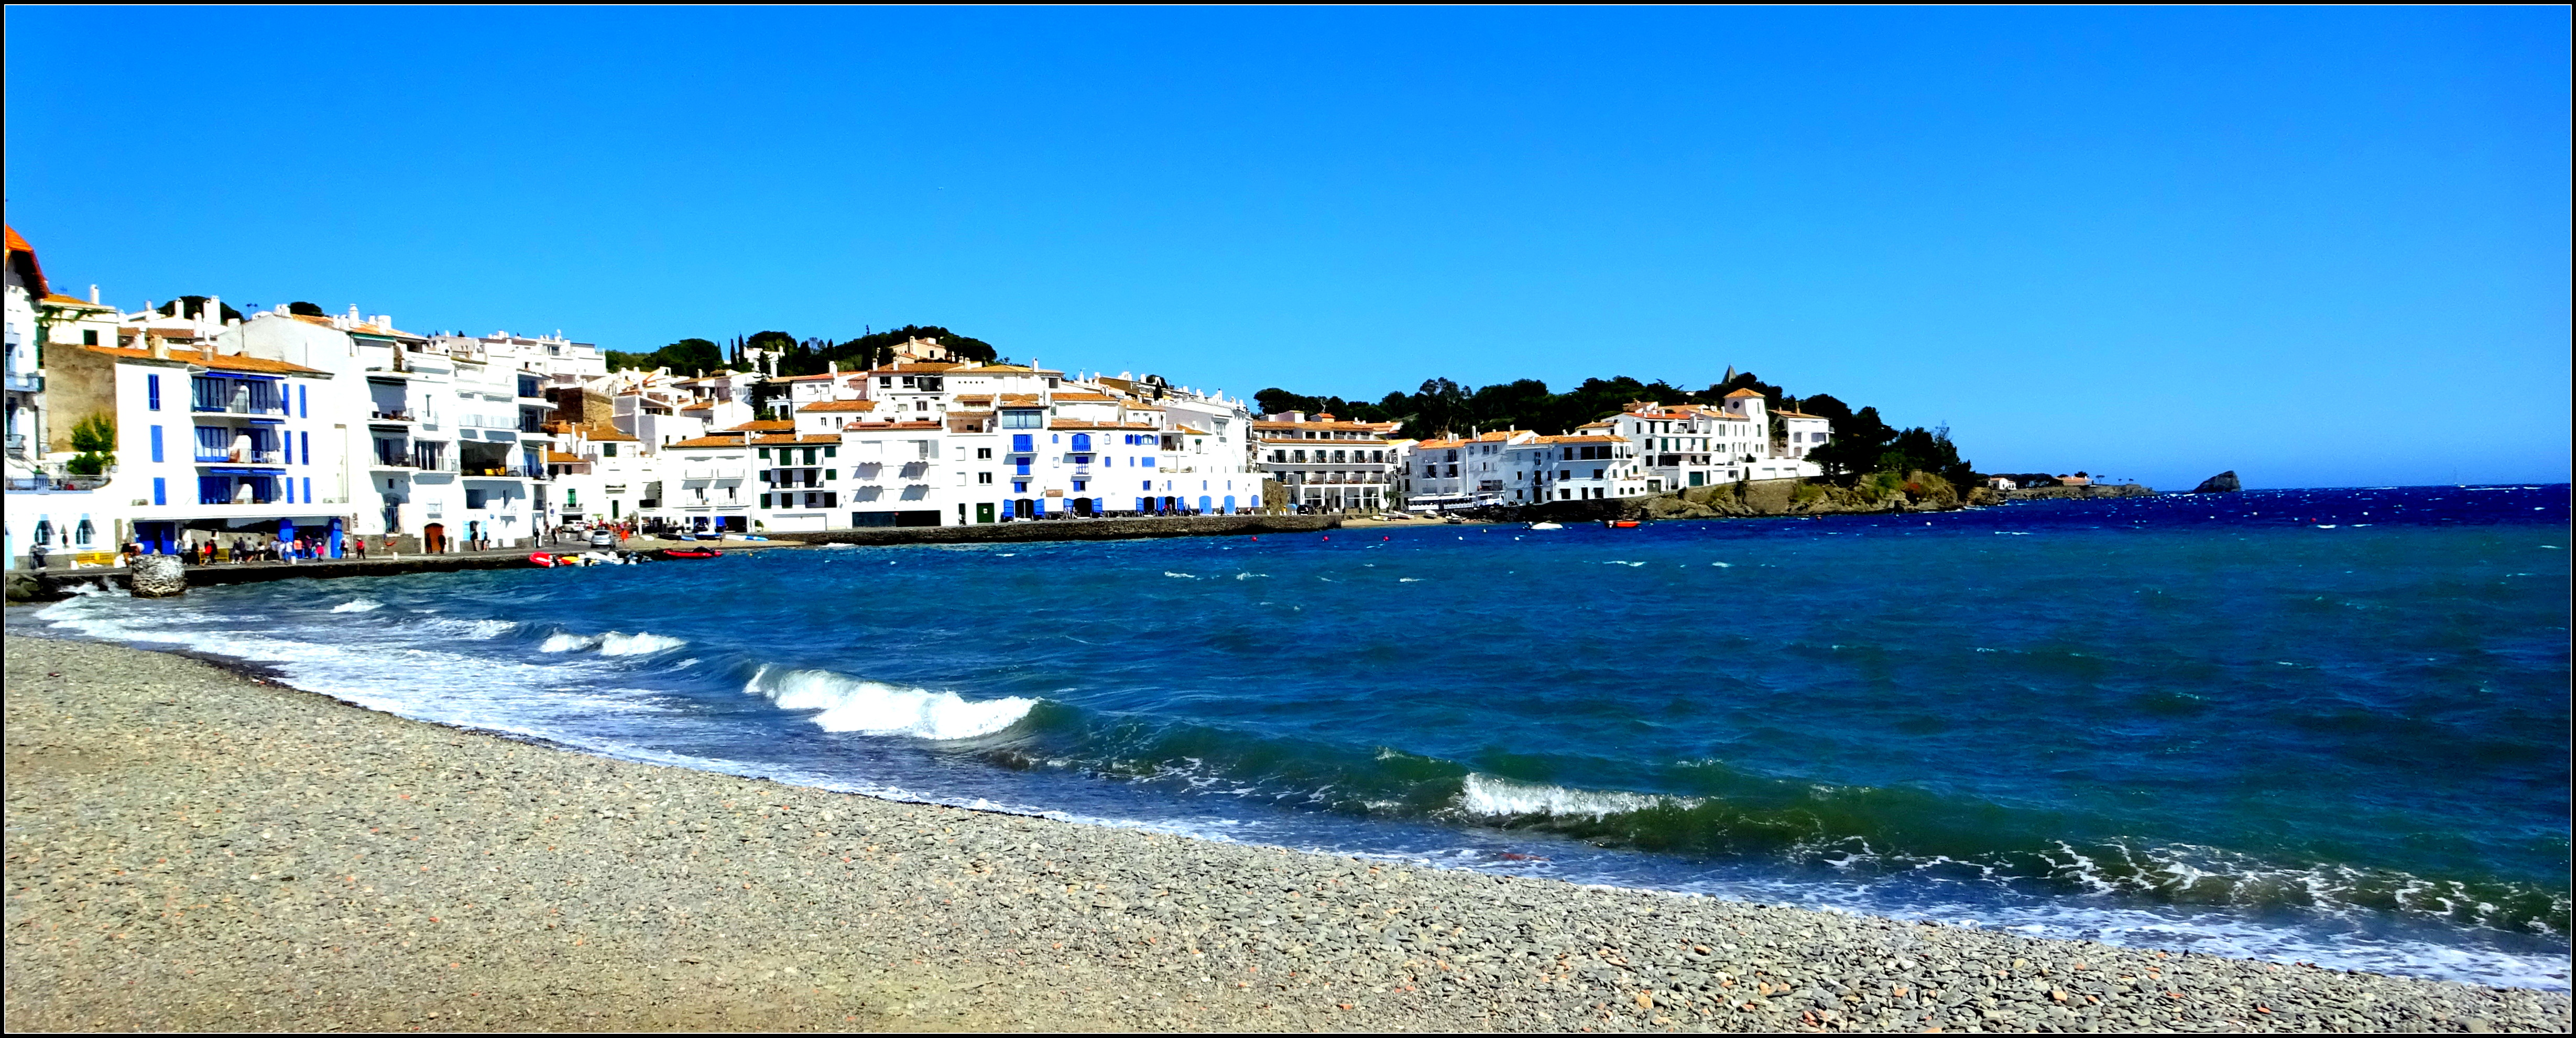 Road Trip from Barcelona to Costa Brava A Surreal Journey Happy